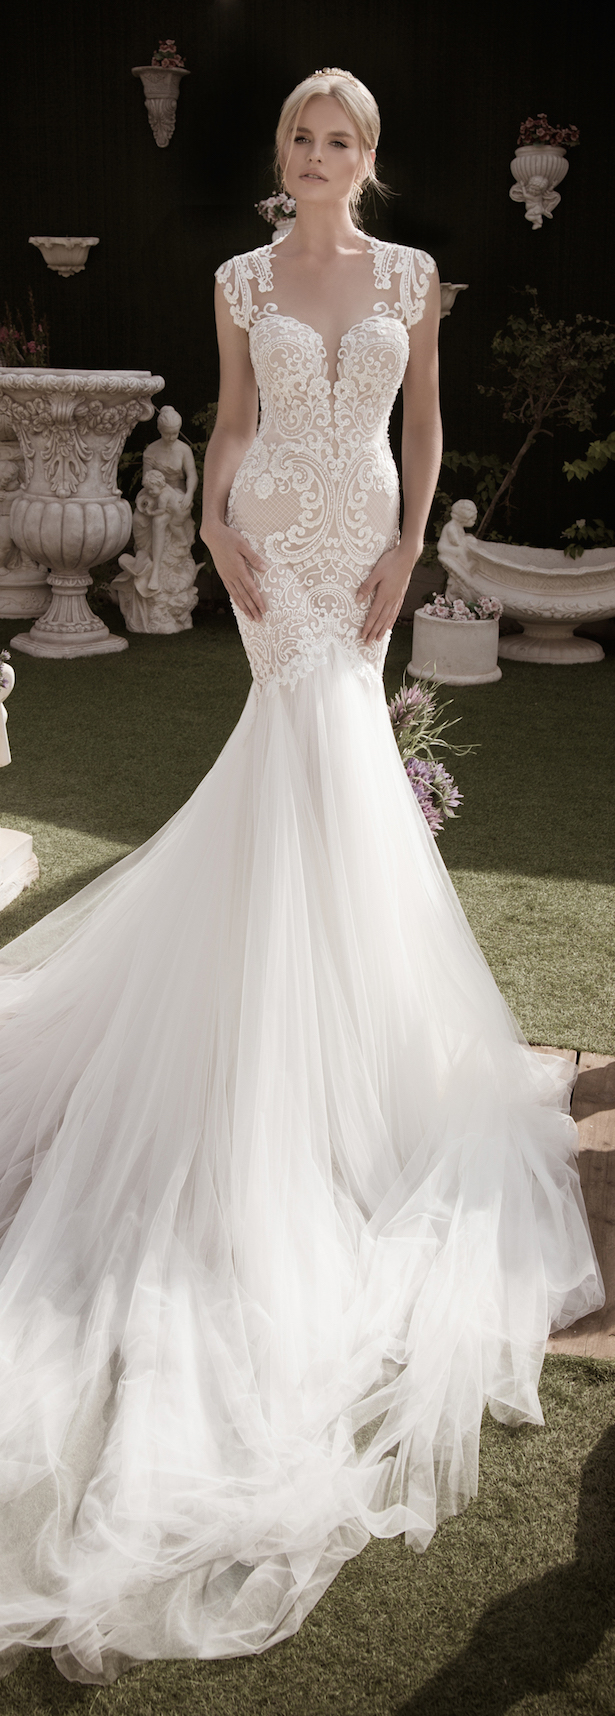 Wedding Dress Colors And Their Meanings 99 Cool Naama u Anat Fall